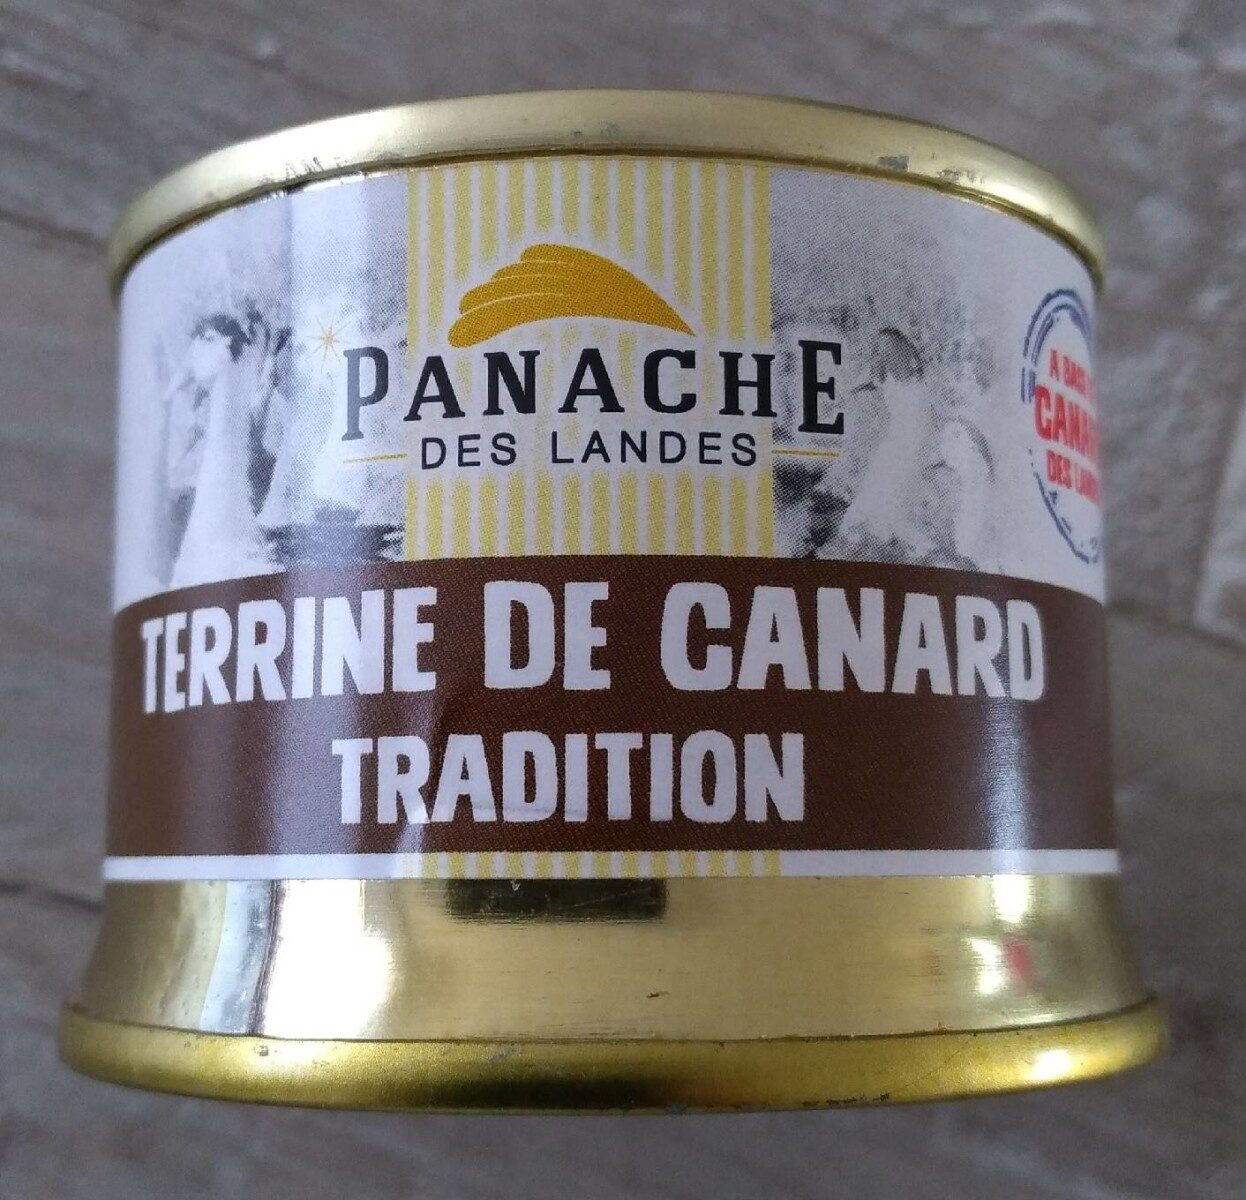 Terrine de canard tradition - Produit - fr